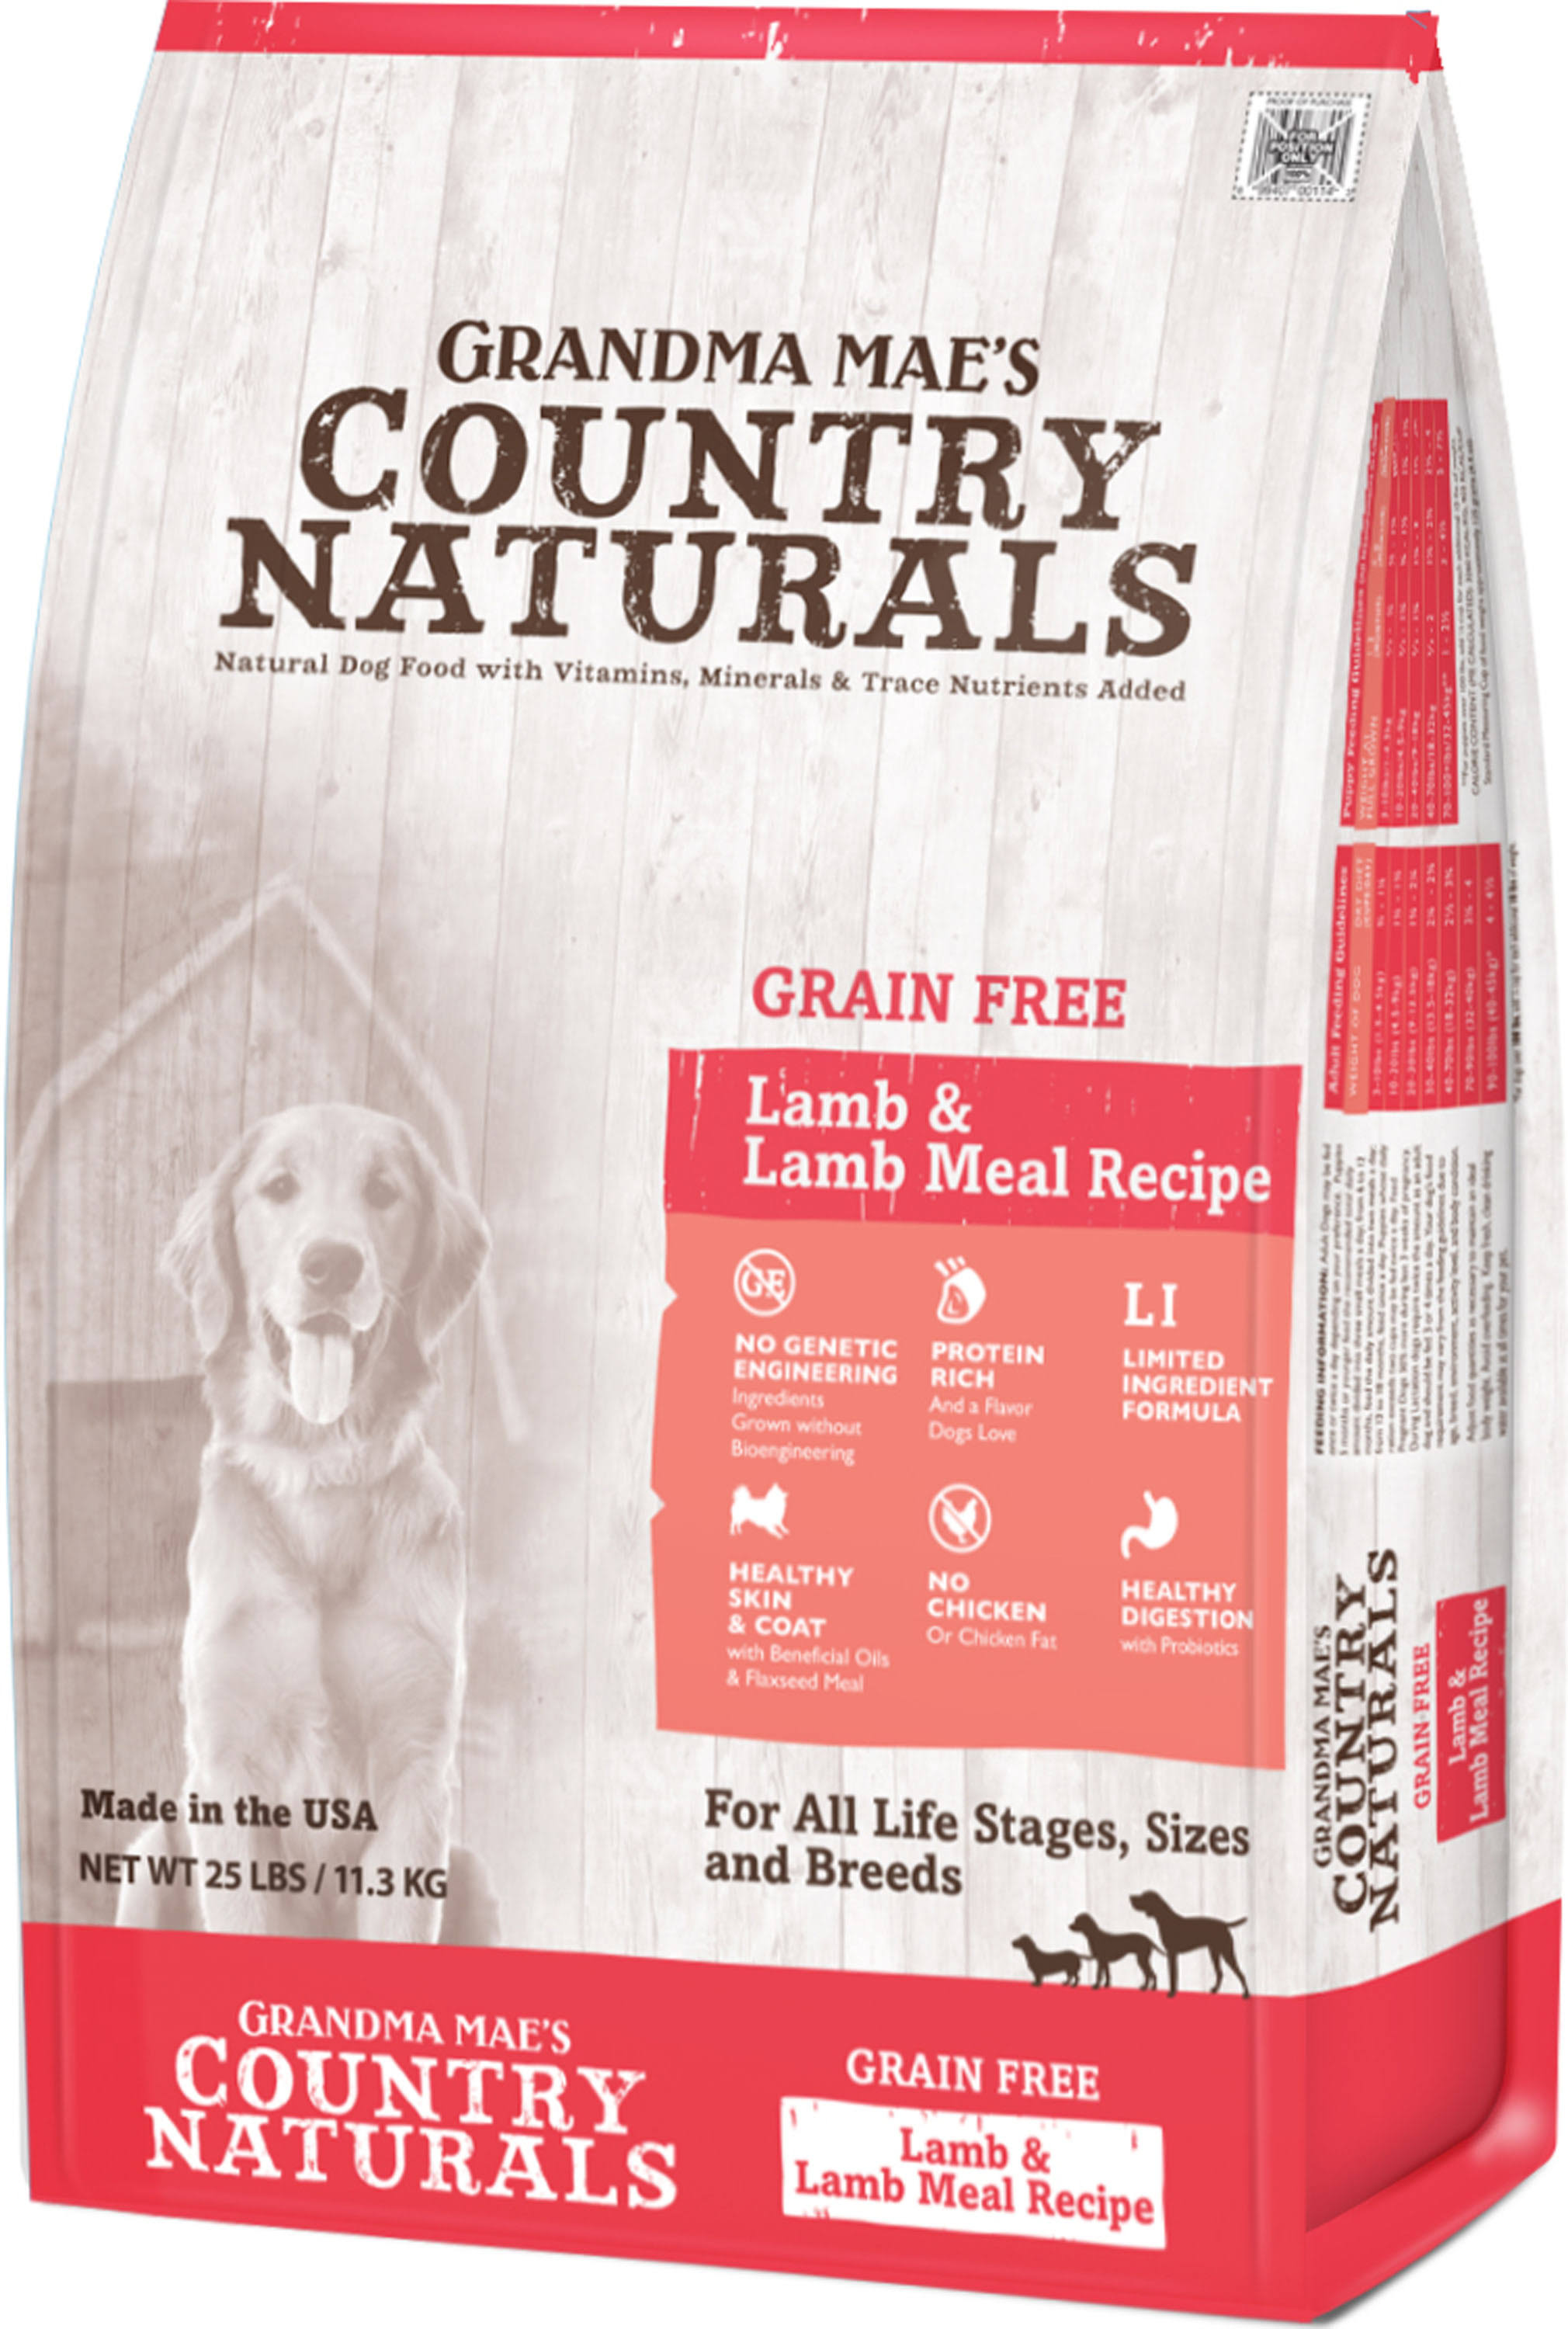 Grandma Mae's Country Naturals Low Fat Dog Food